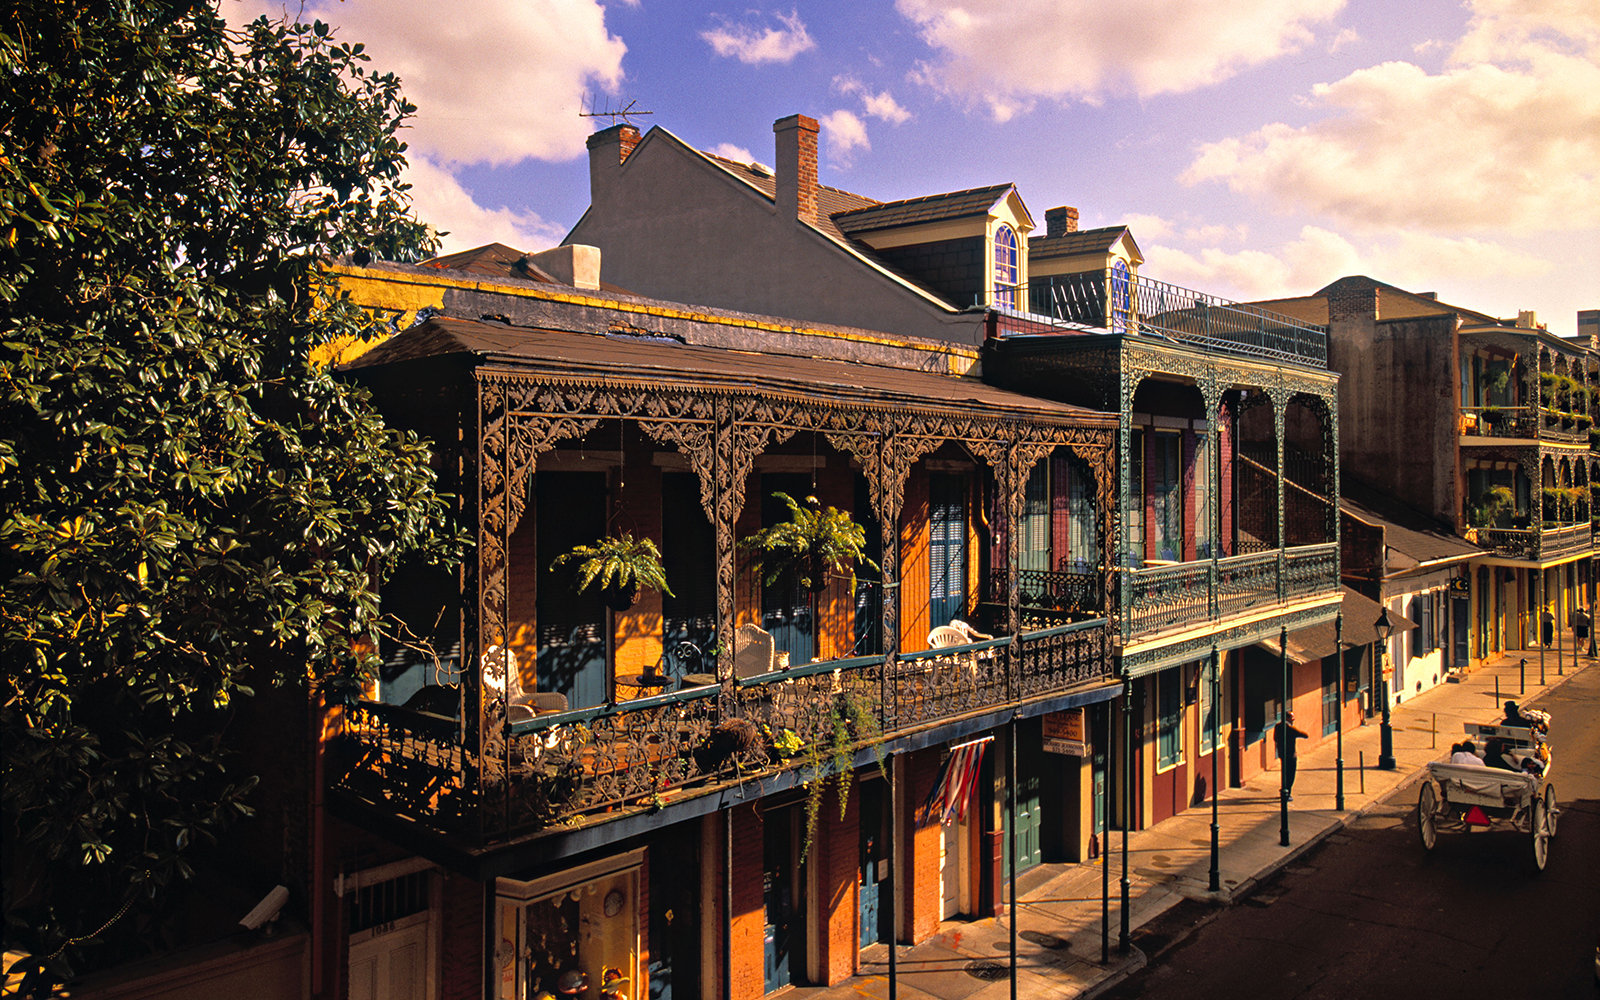 the French Quarters in New Orleans, LA